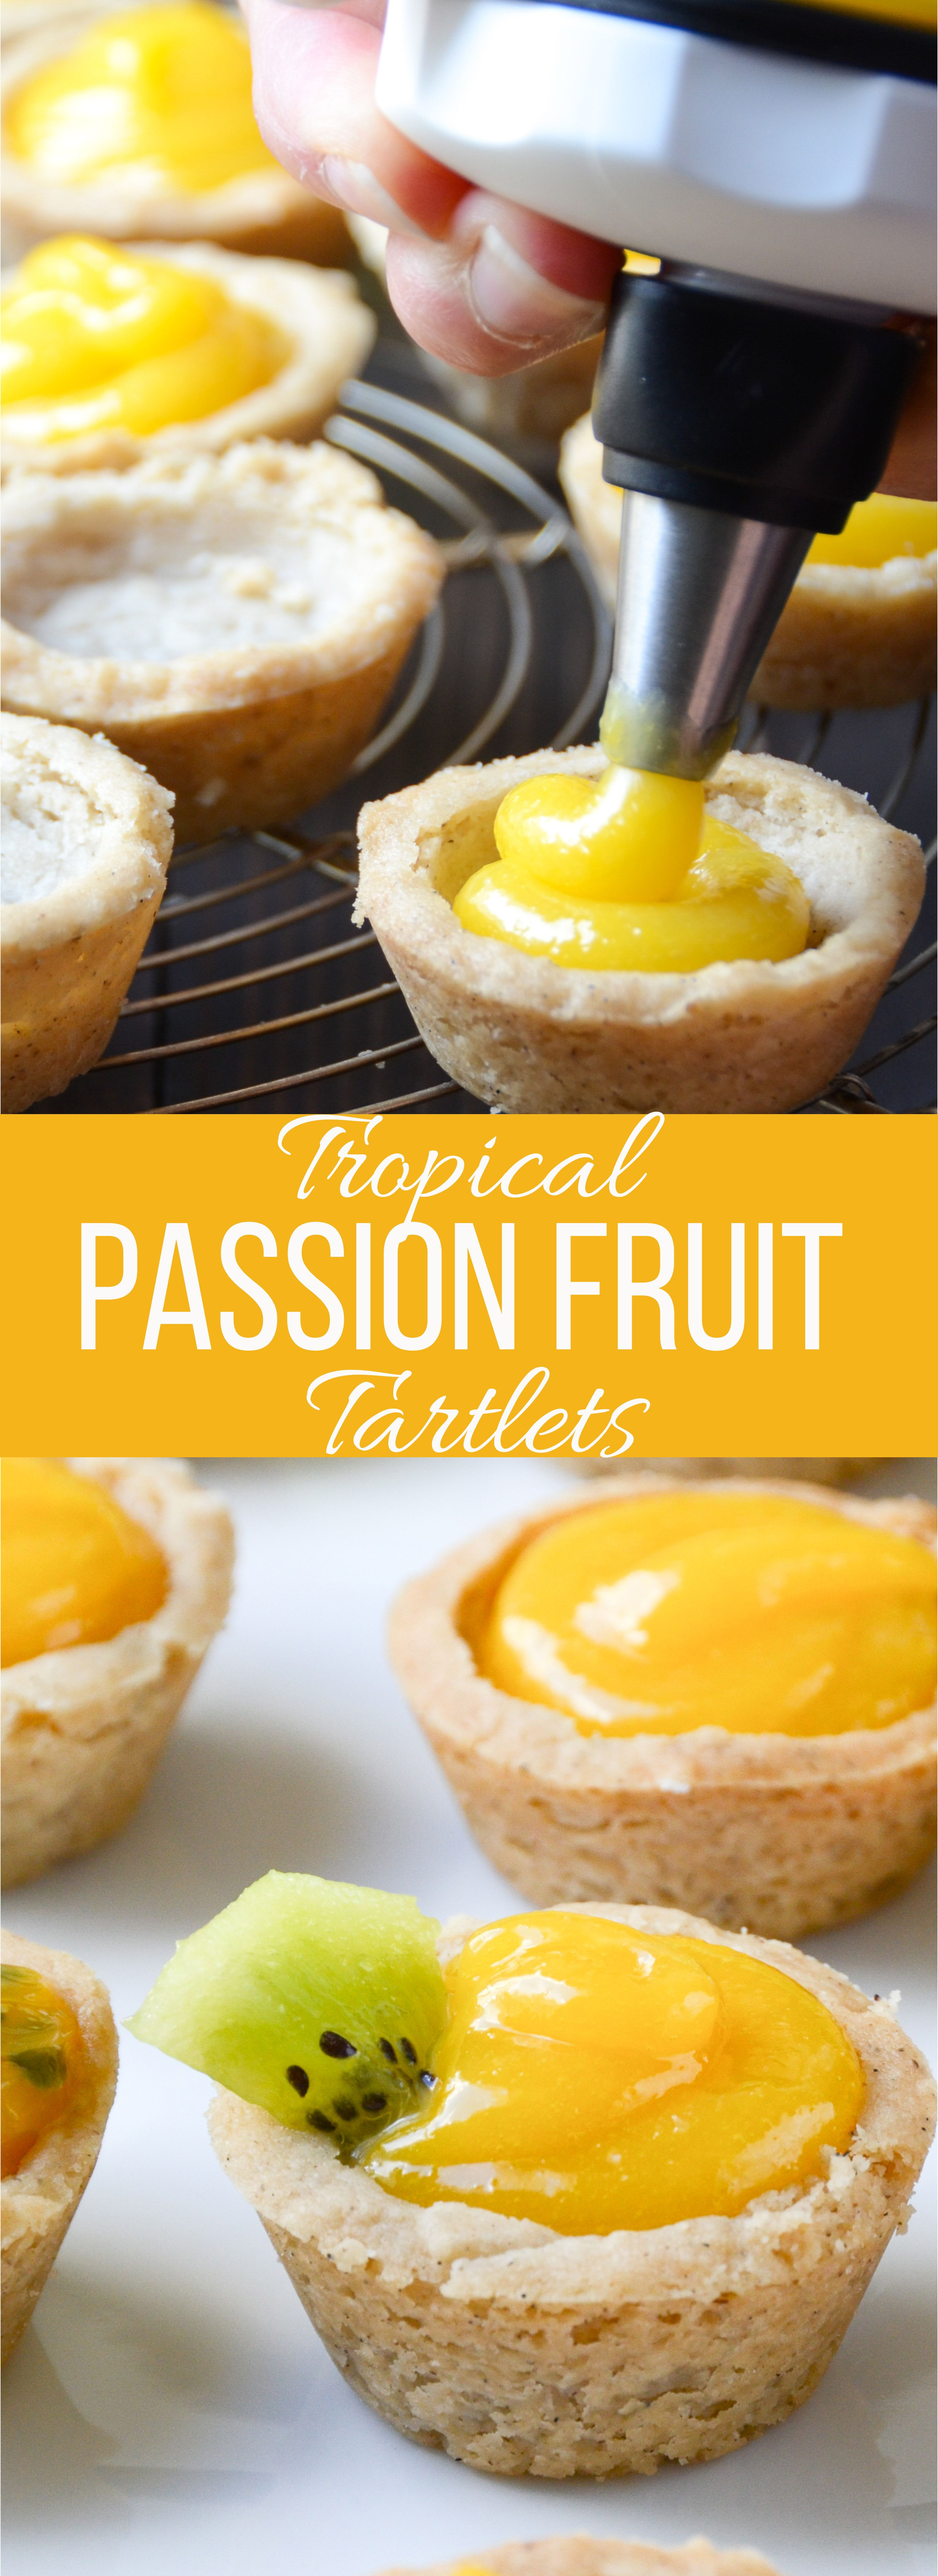 Tropical Passion Fruit Tartlets is part of Fruit tartlets - With a rich buttery shortbread crust and an impossibly addictive passion fruit curd, your guests will be swooning over these little tarts!